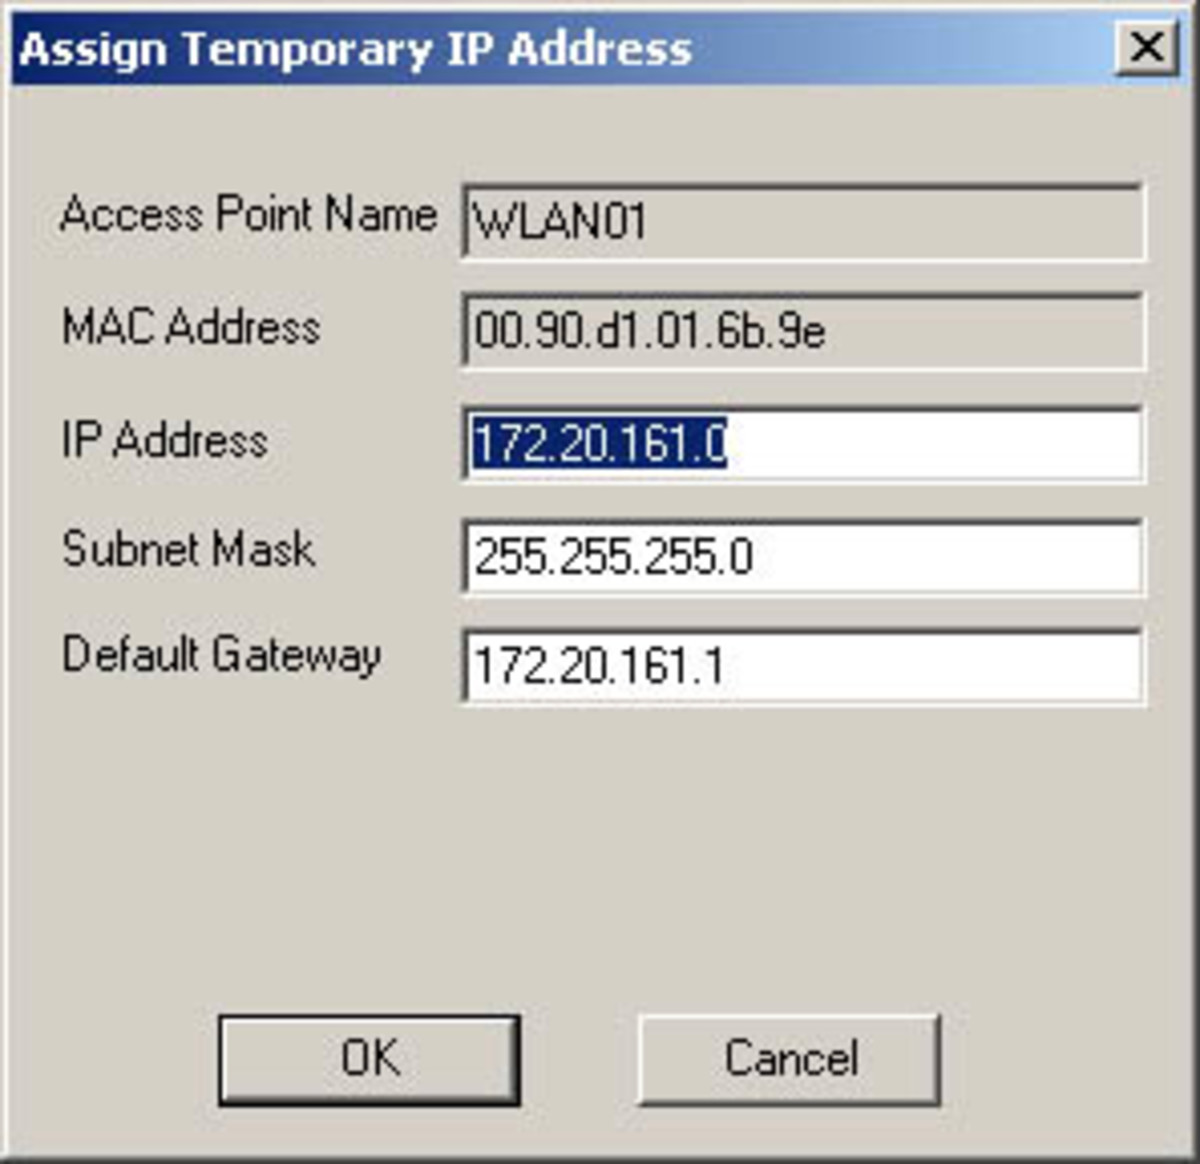 An example of a typical IP address